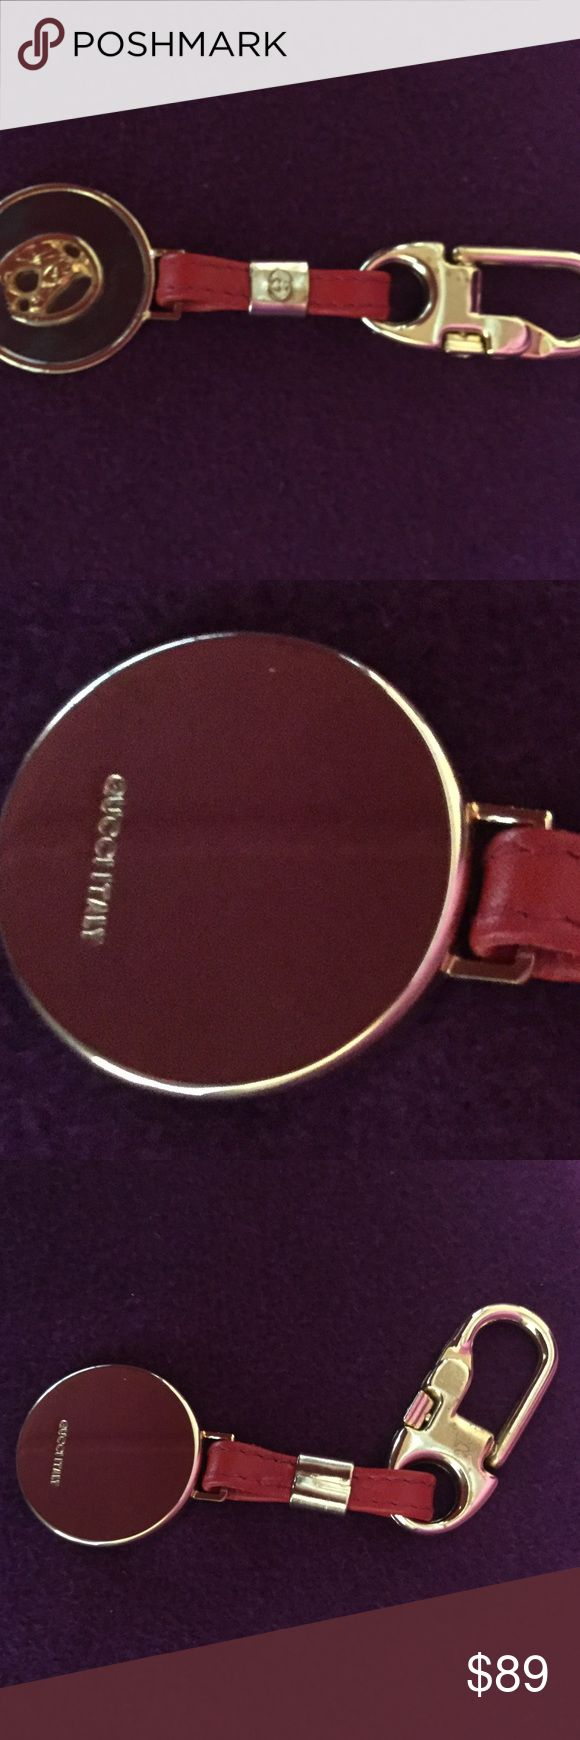 Gucci keychain Authentic Gucci keychain.  Very good condition. Gucci Accessories Key & Card Holders